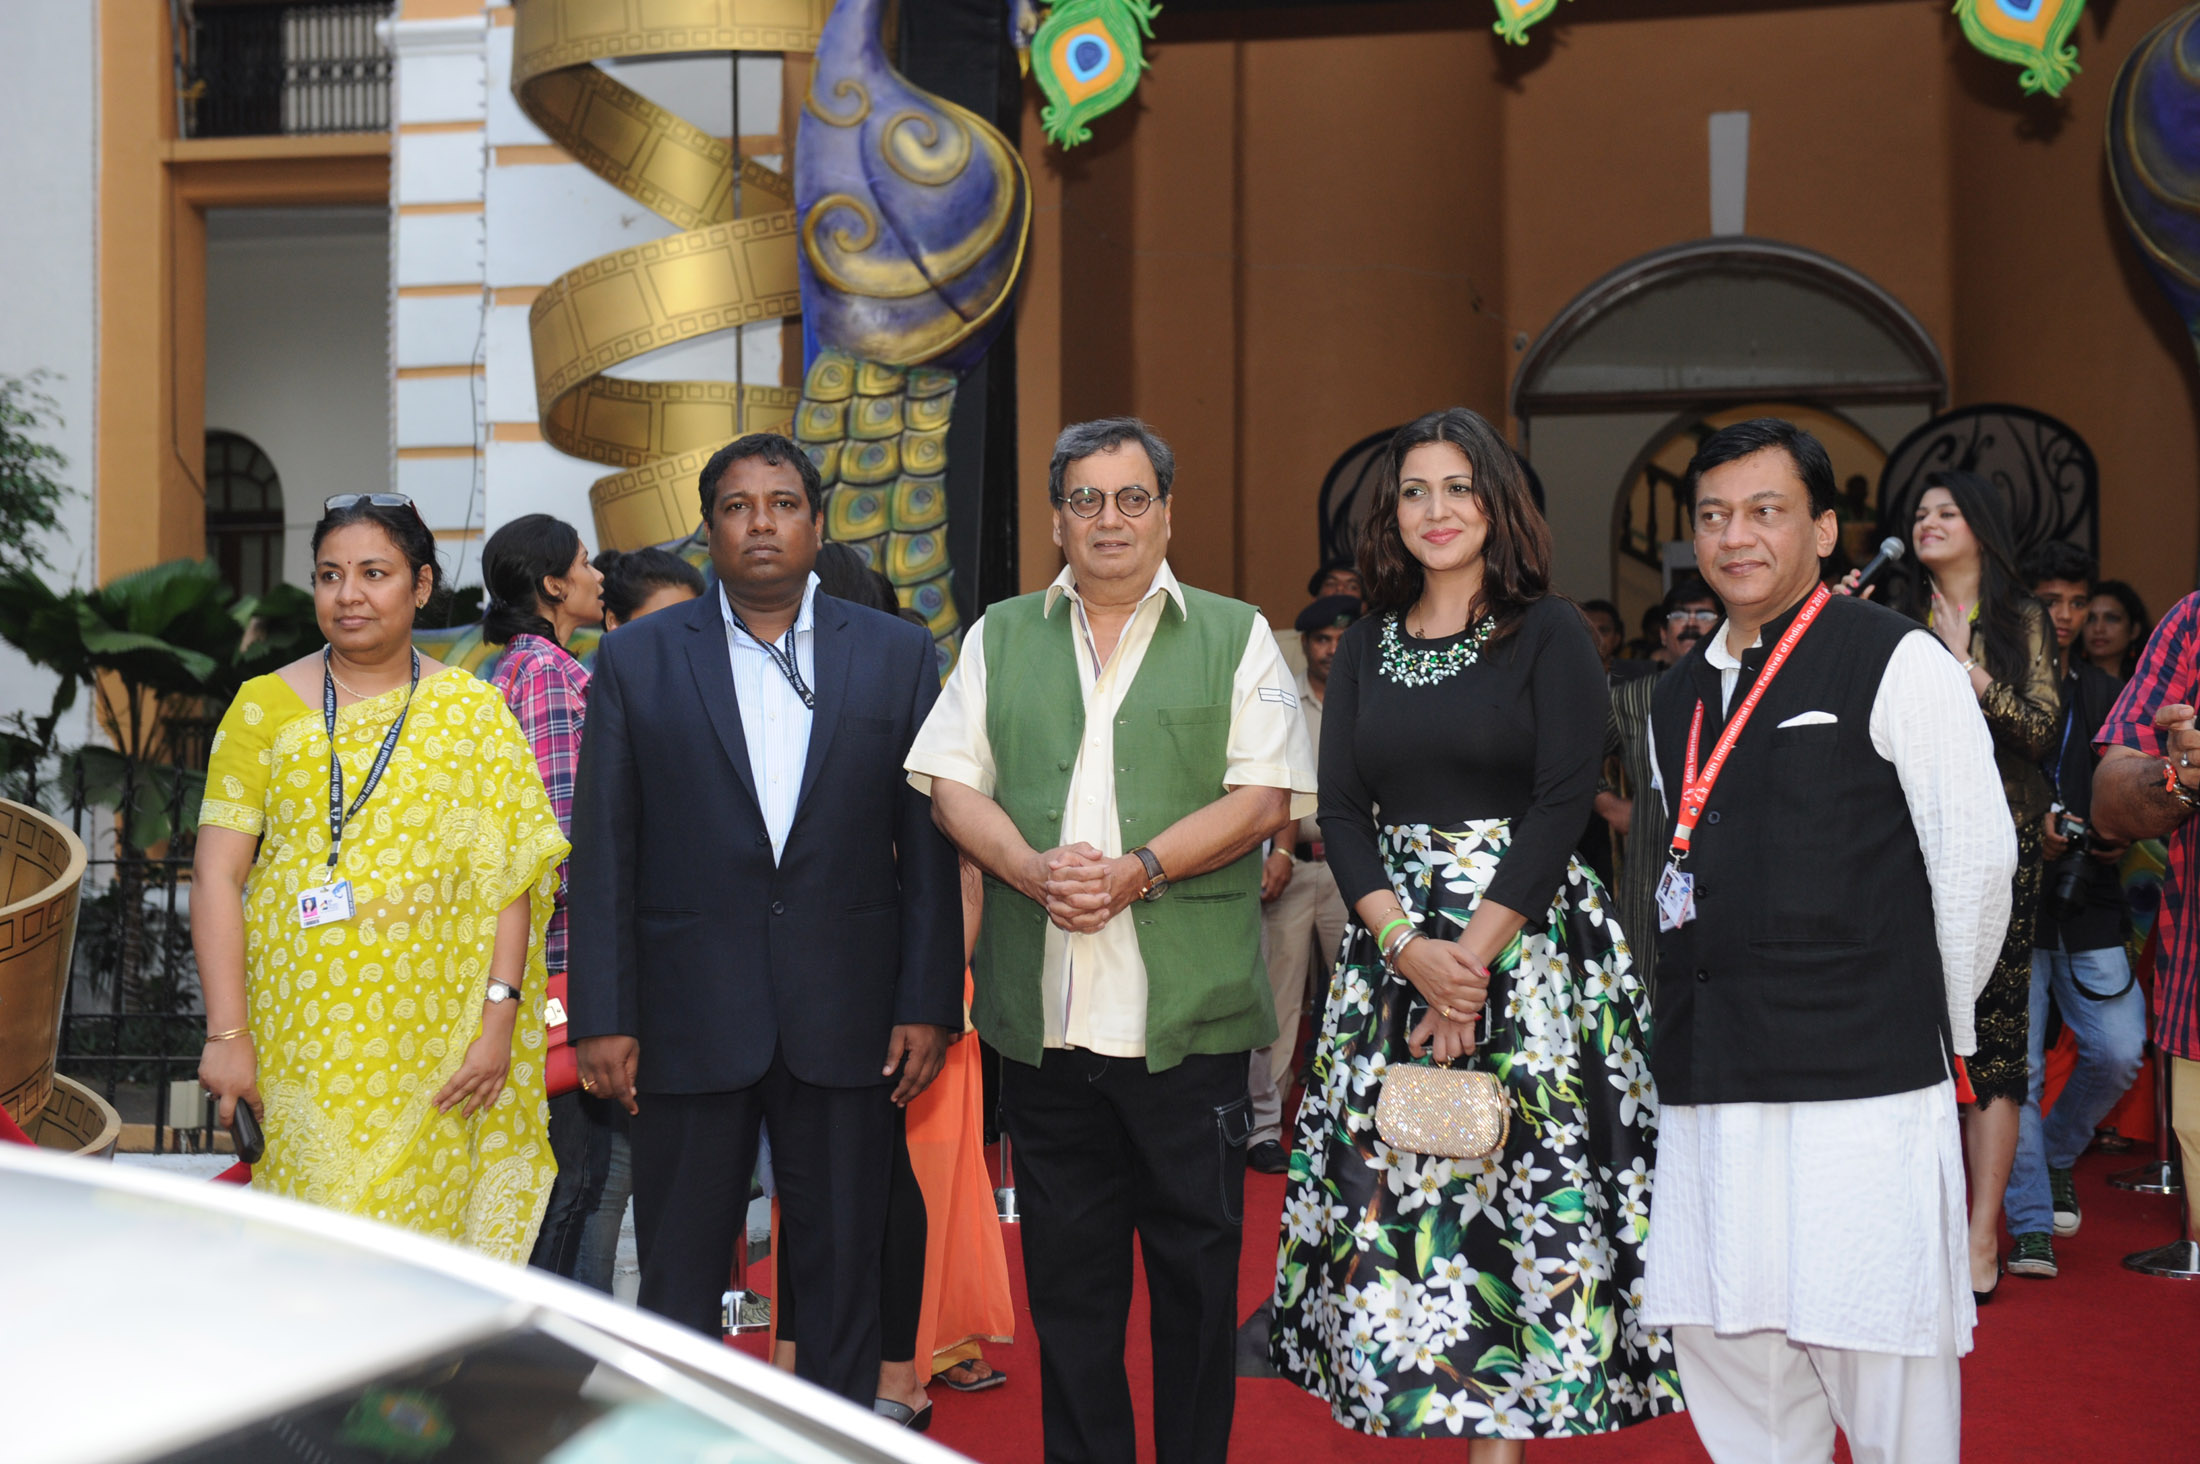 Subhash Ghai at IFFI 2015 Red Carpet